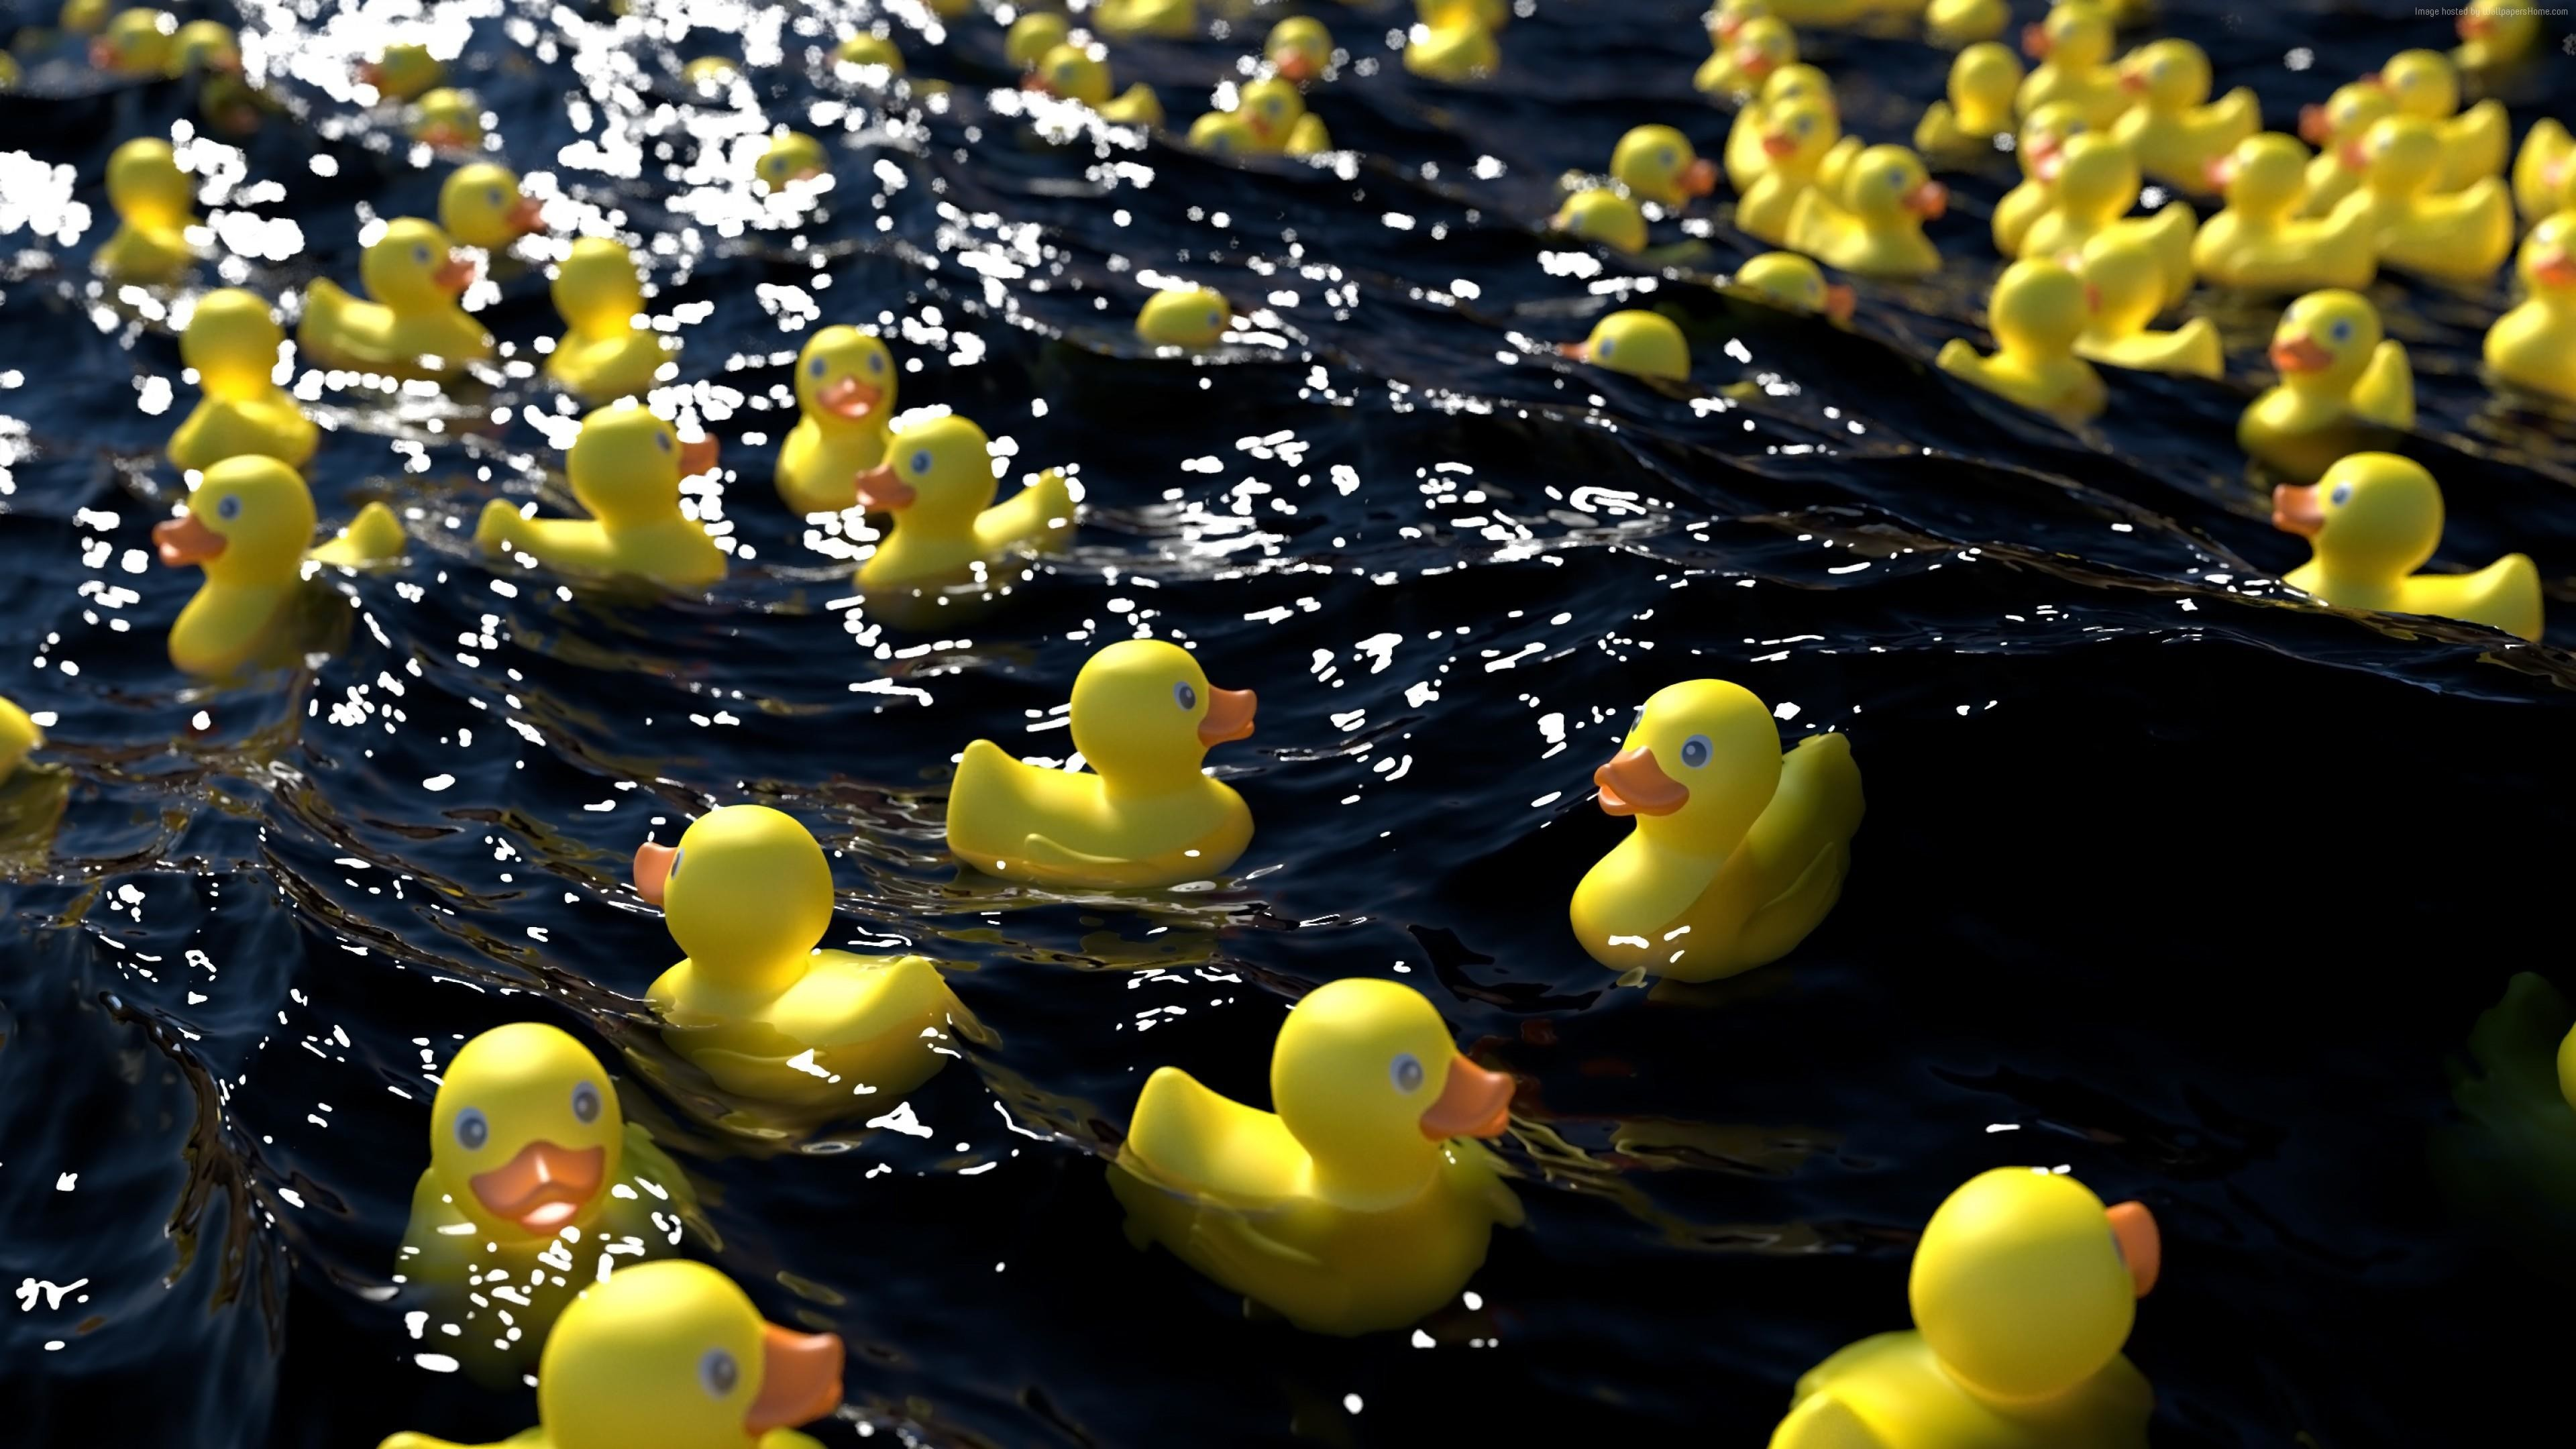 58 Rubber Duck Wallpapers on WallpaperPlay 3840x2160